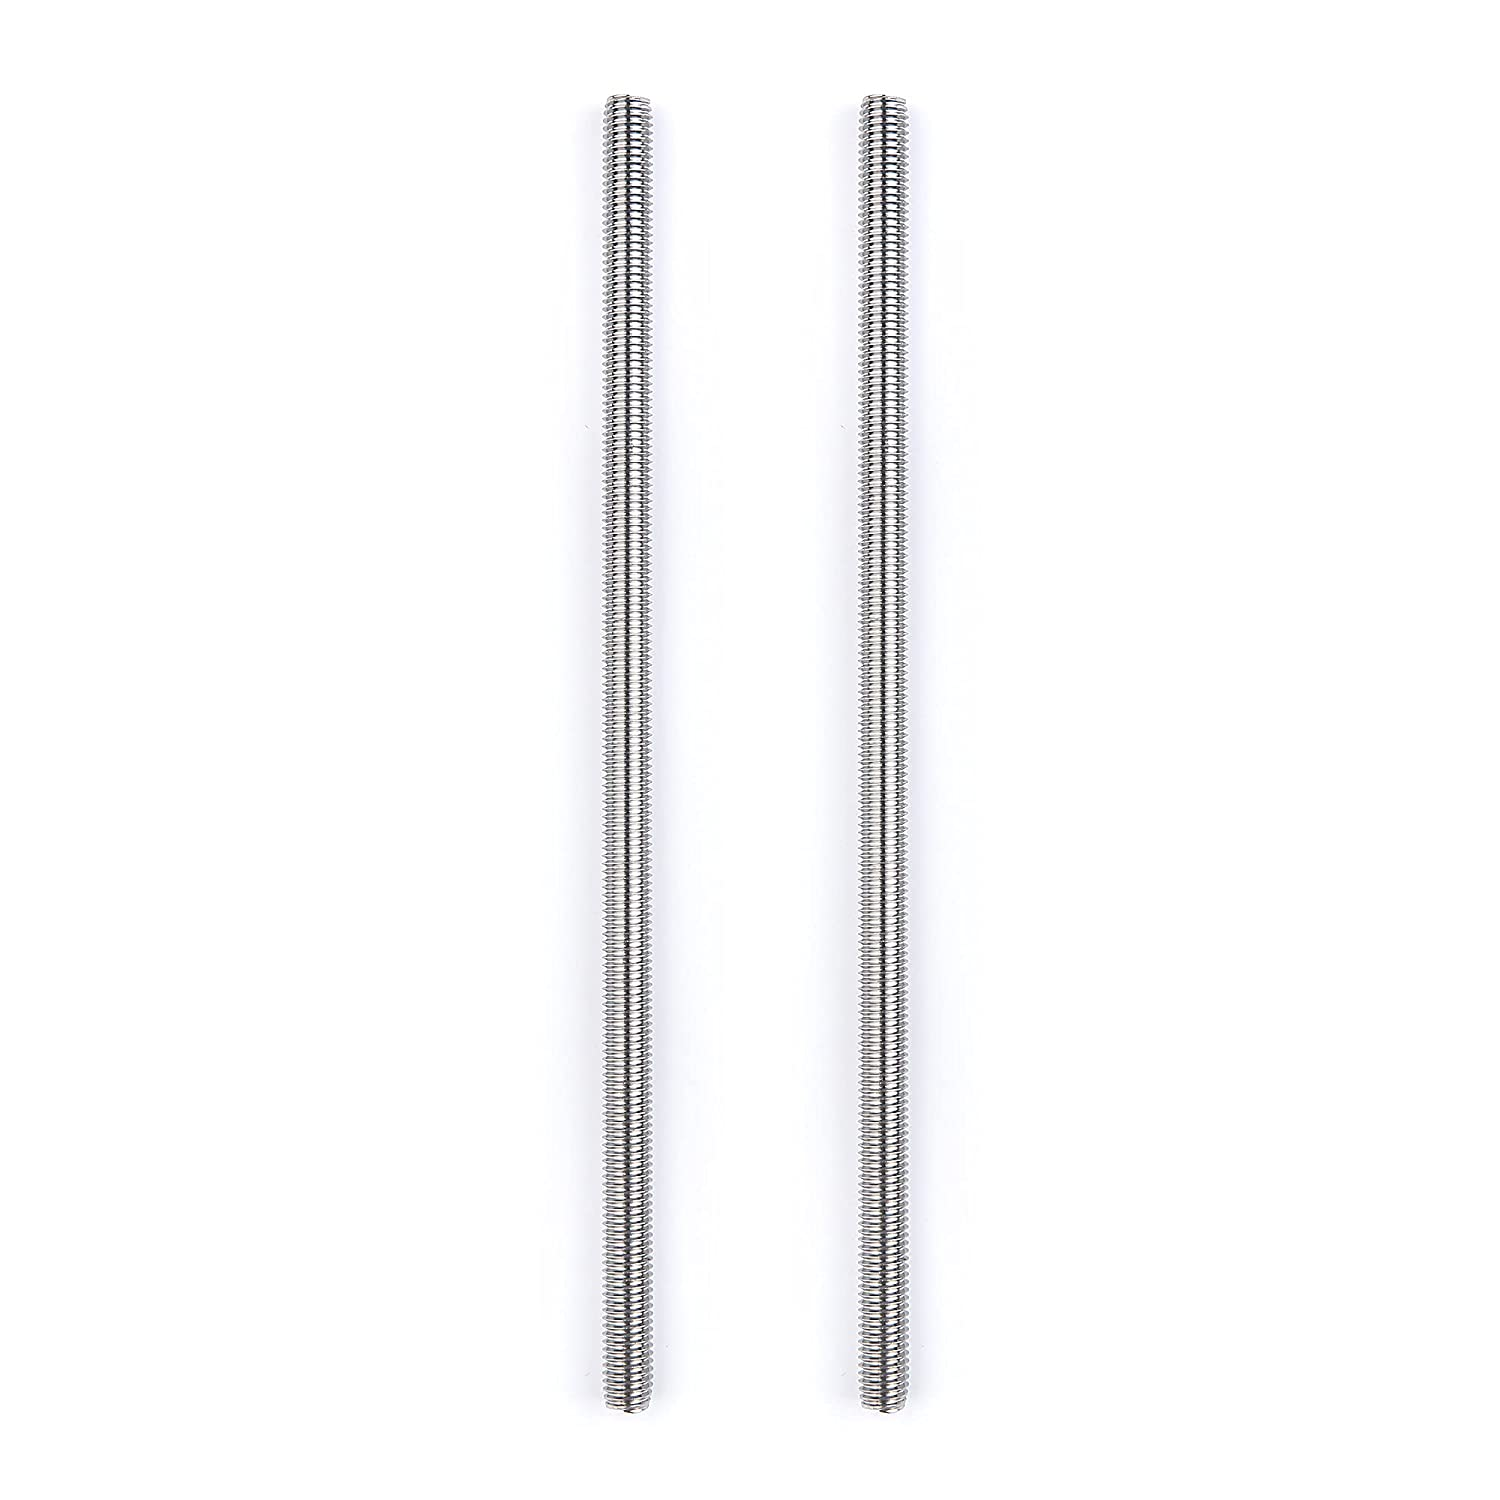 2Pcs M4 x 250mm Fully 55% OFF Threaded Rods Sta Rod Bar Studs Cash special price 304 Screw